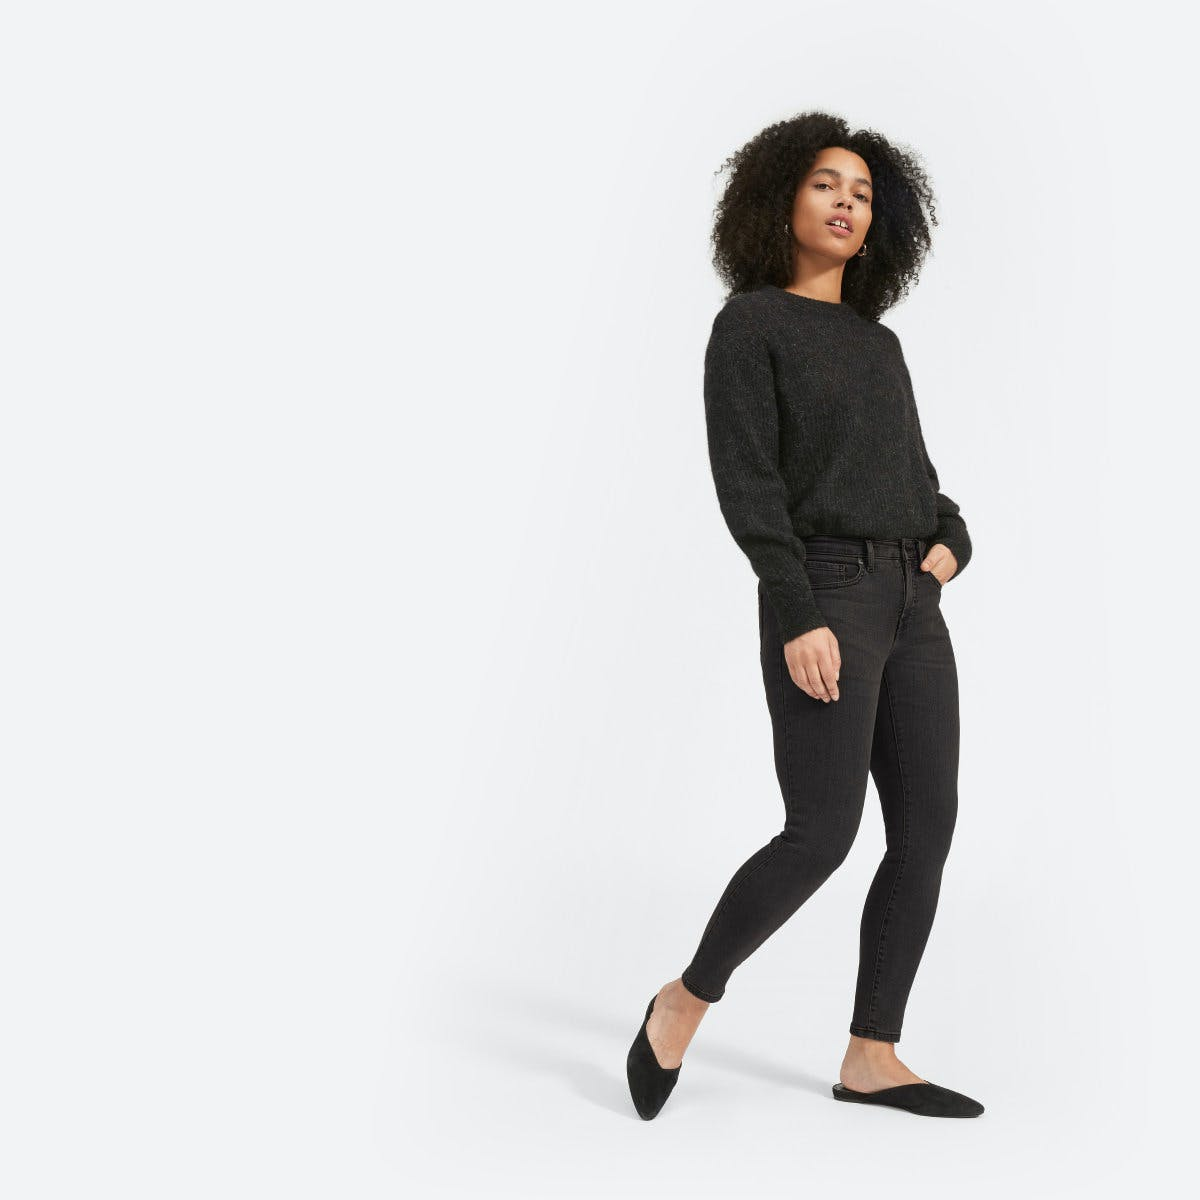 everlane, everlane jeans, everlane denim, japanese denim, skinny jeans, cropped jeans, mid rise jeans, washed black denim, black denim, denimblog, denim blog